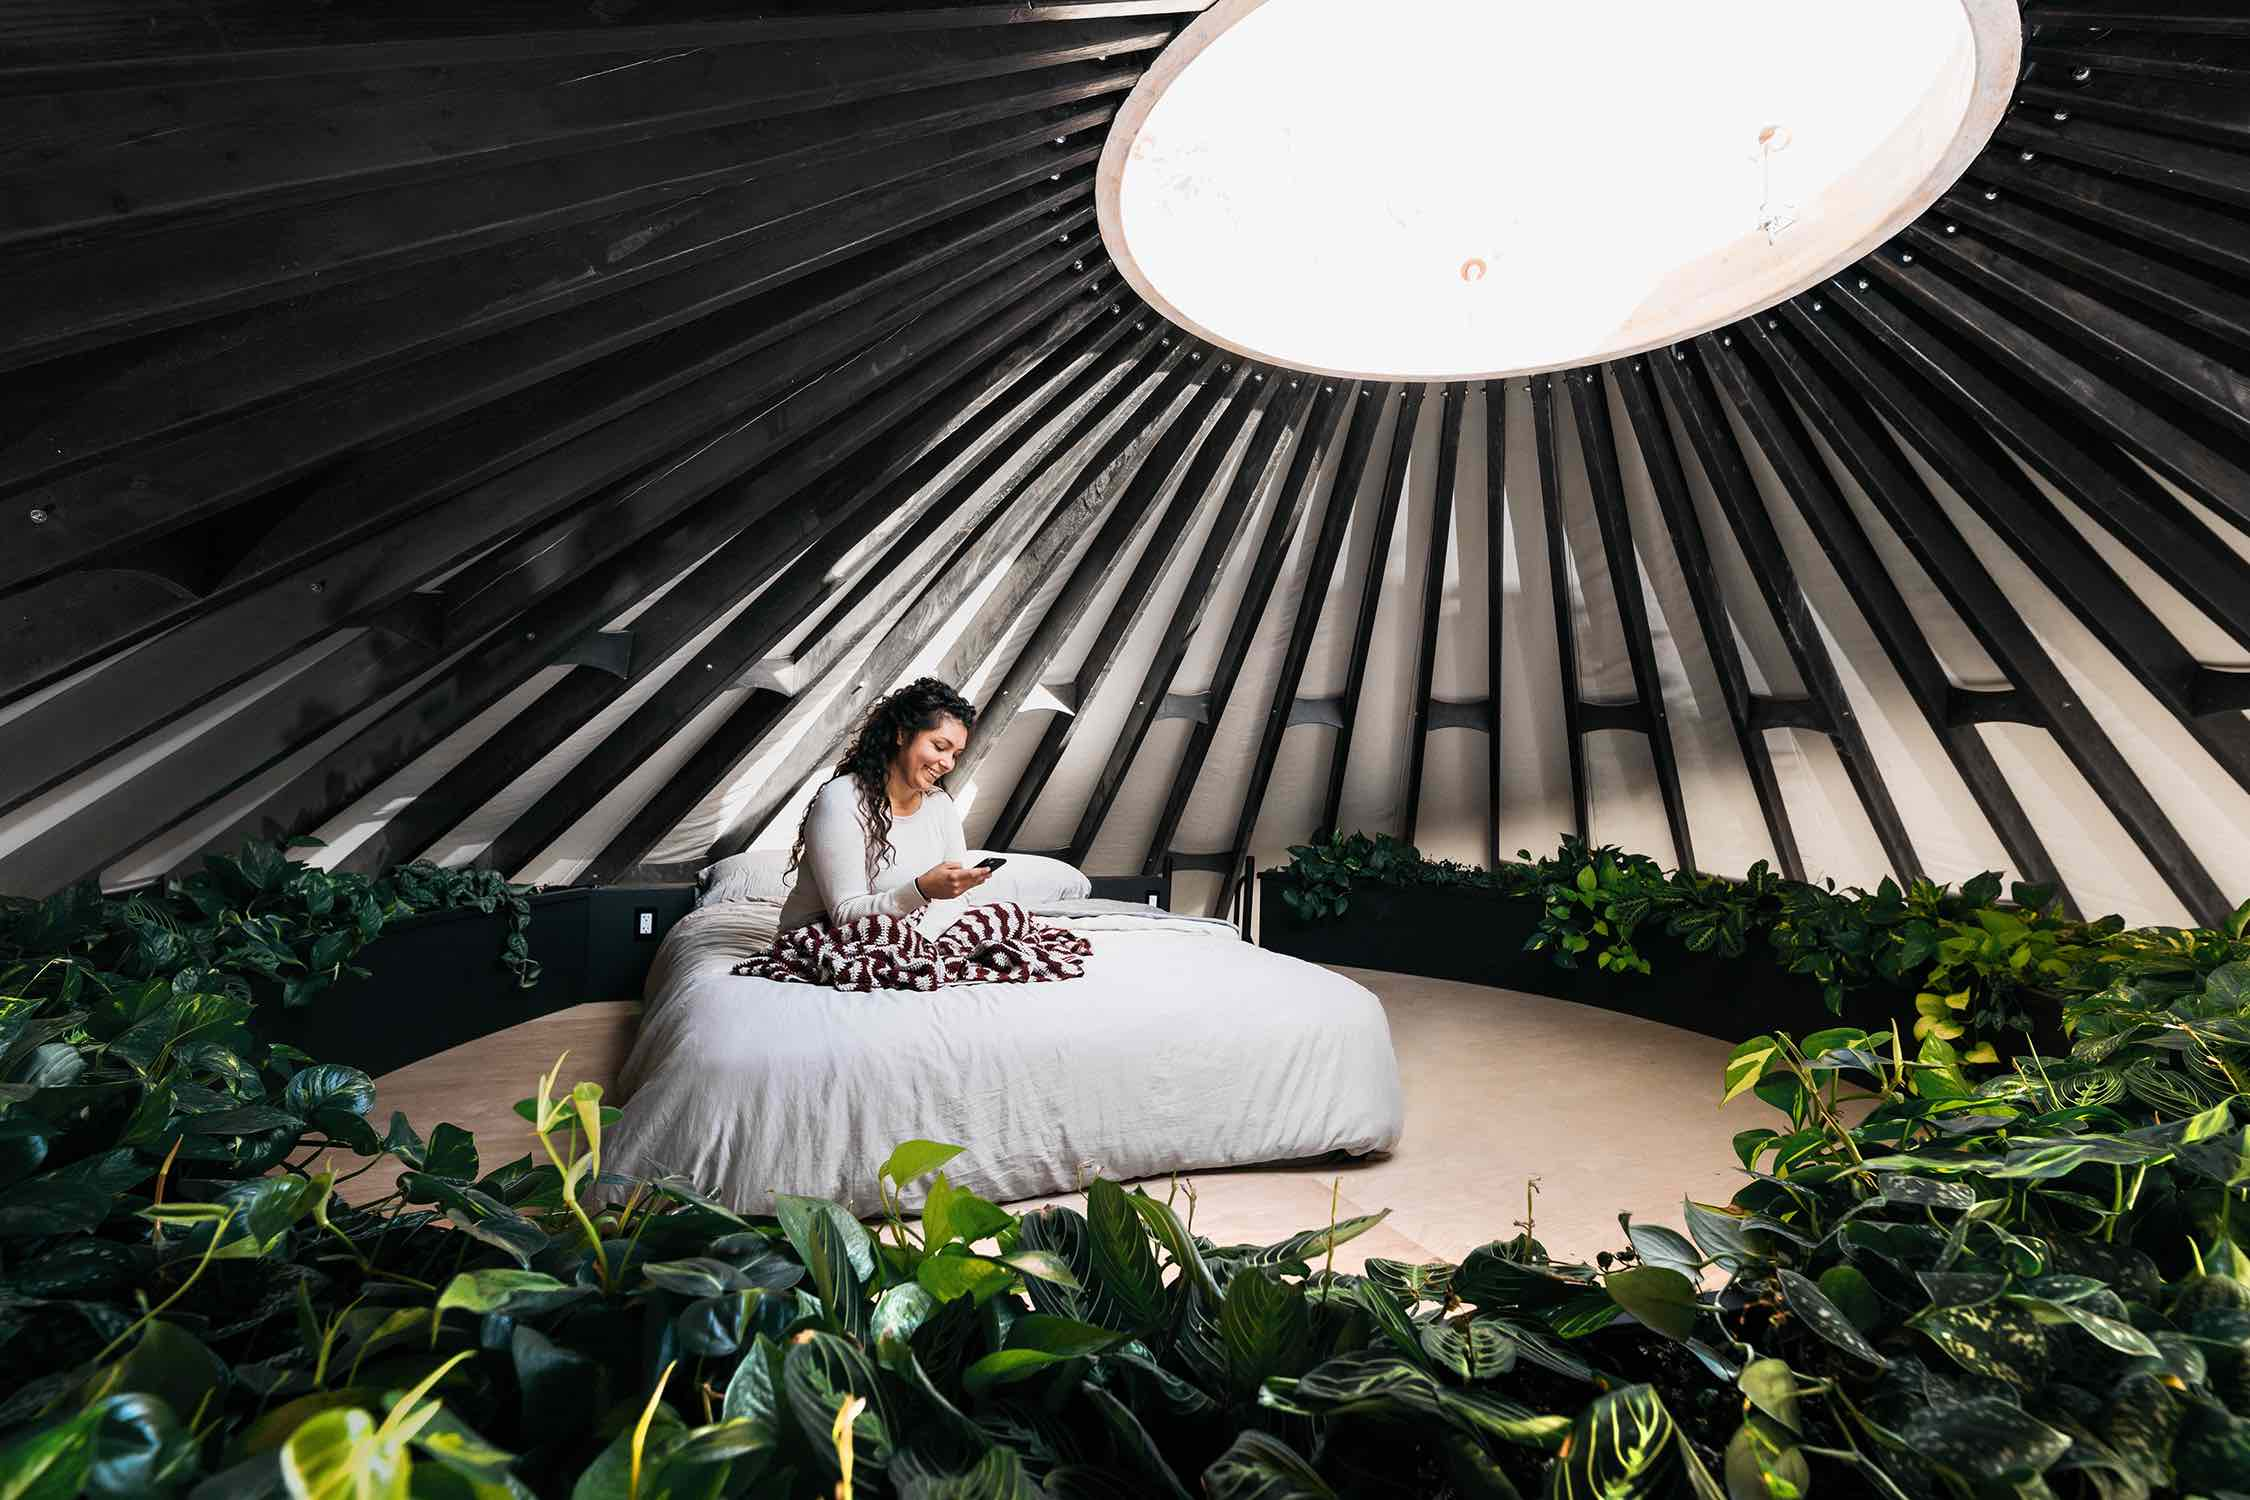 a girl texting on a bed with skylight over the bed